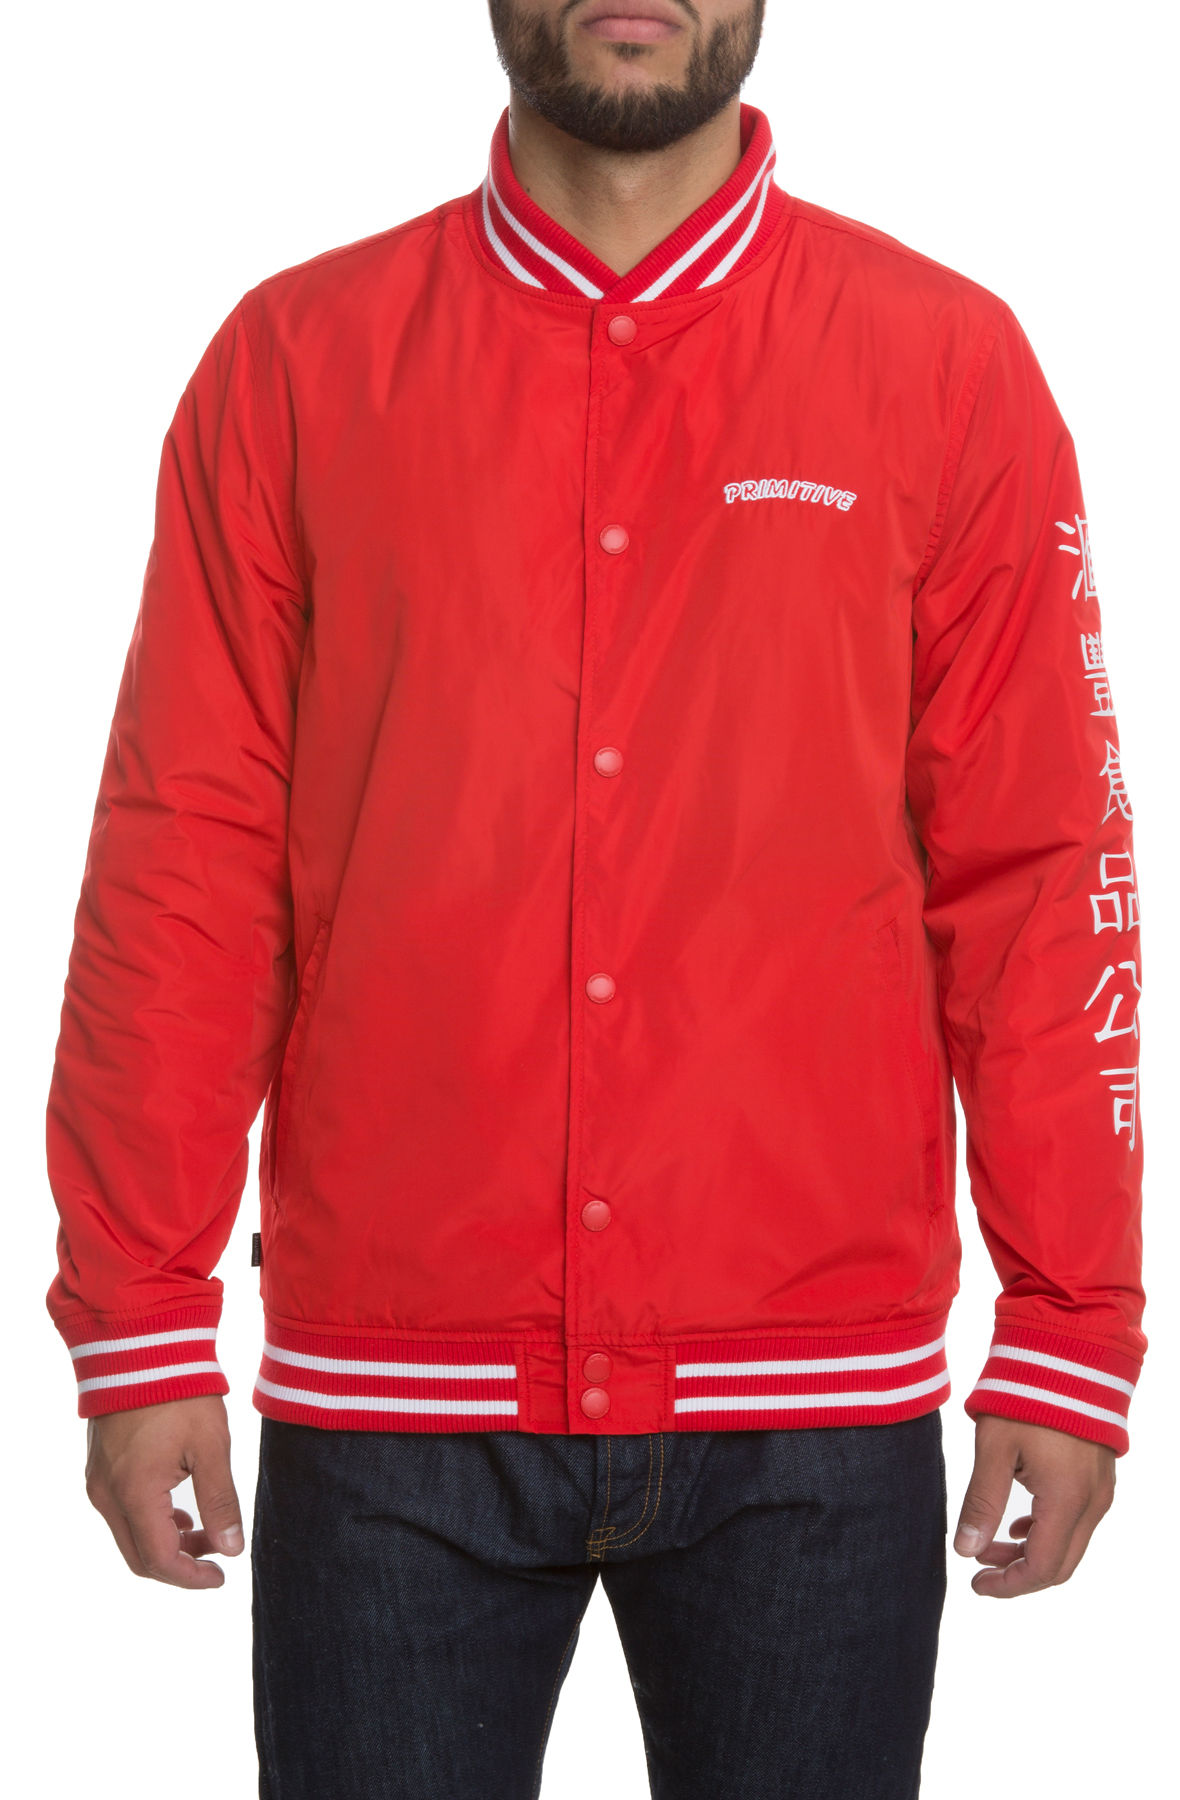 The Primitive x Sriracha Huy Fong Sherpa Varsity Jacket in Red